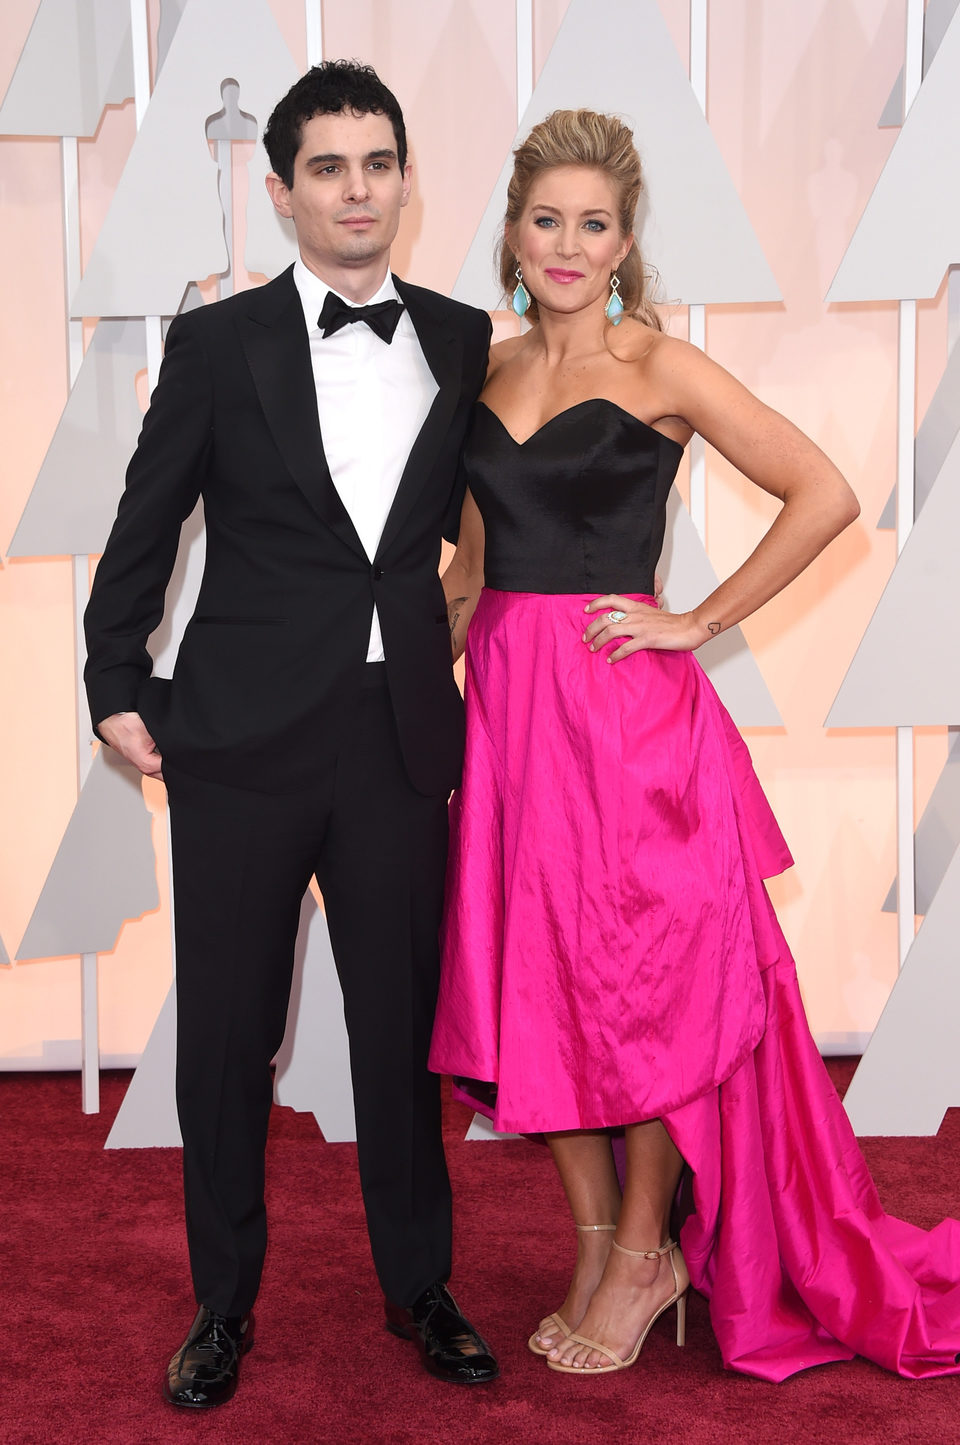 Damien Chazelle and his wife poss in the Oscar 2015 red carpet